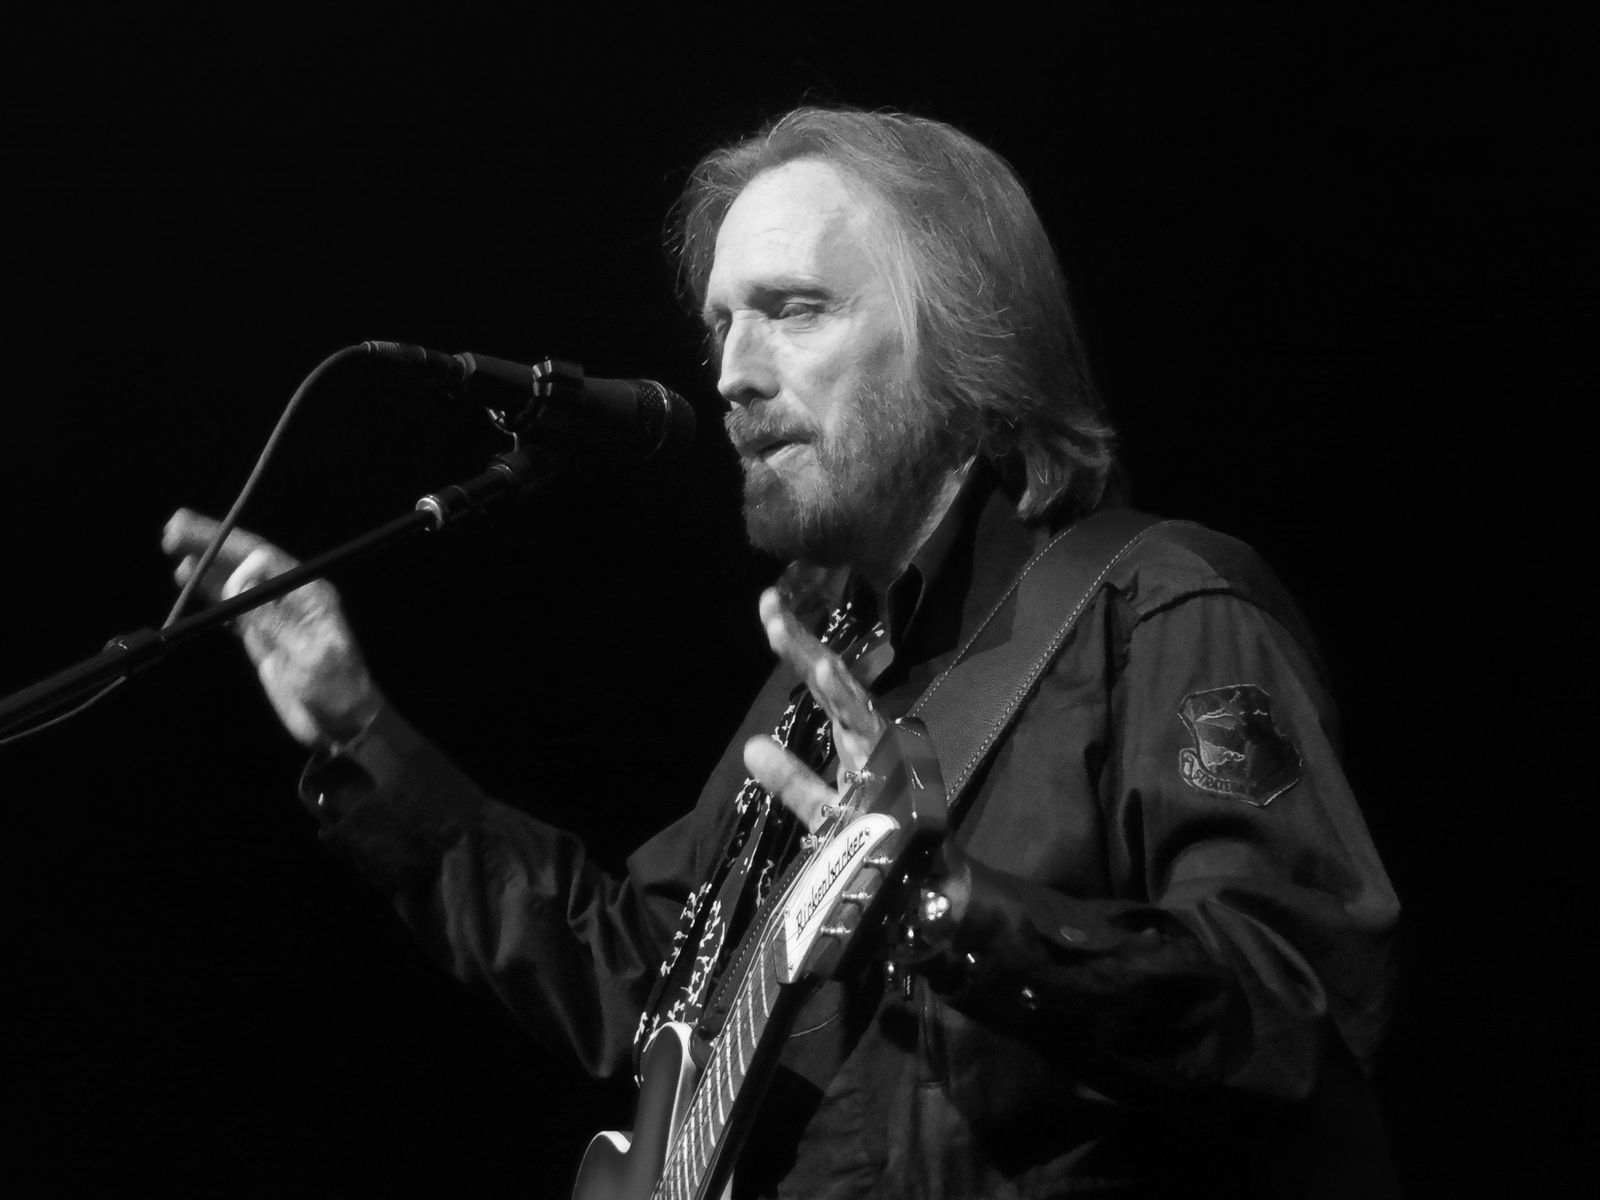 Tom Petty Wallpapers 1600x1200